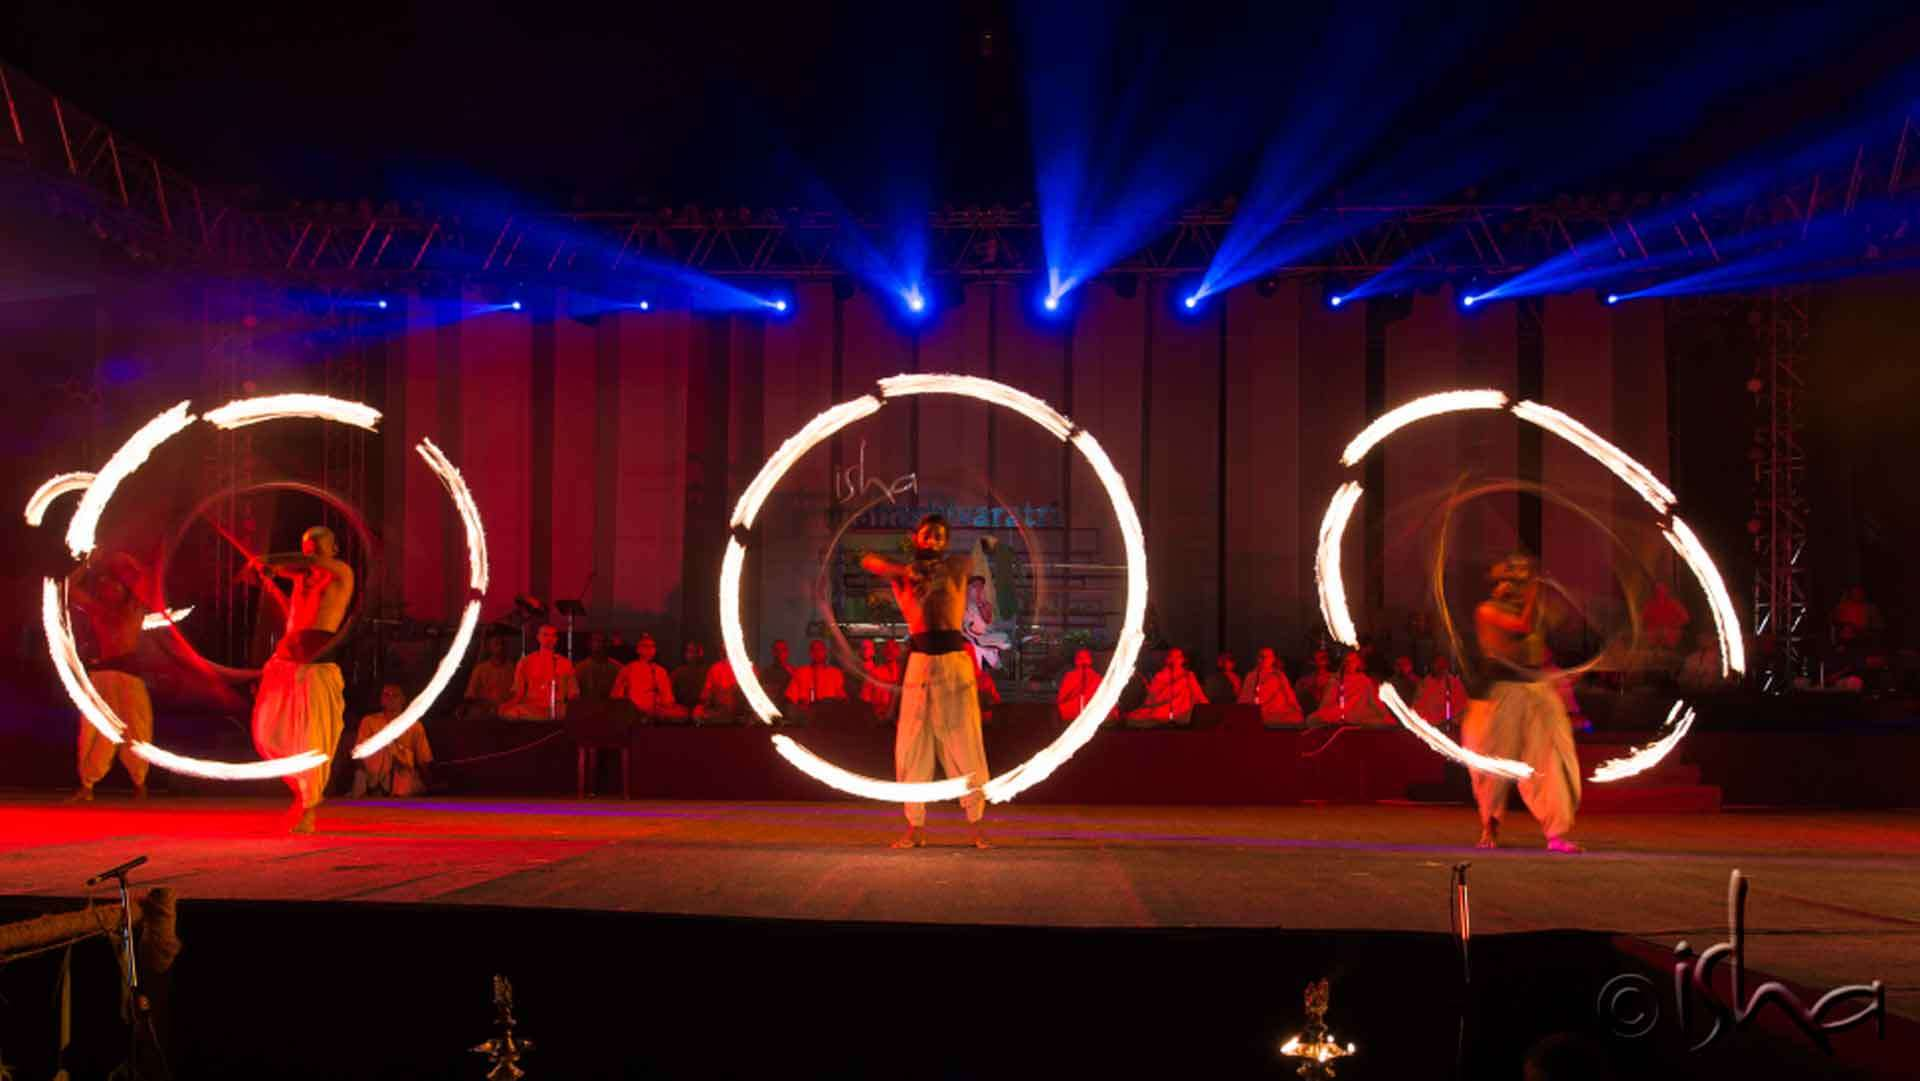 Fire performance by brahmacharis